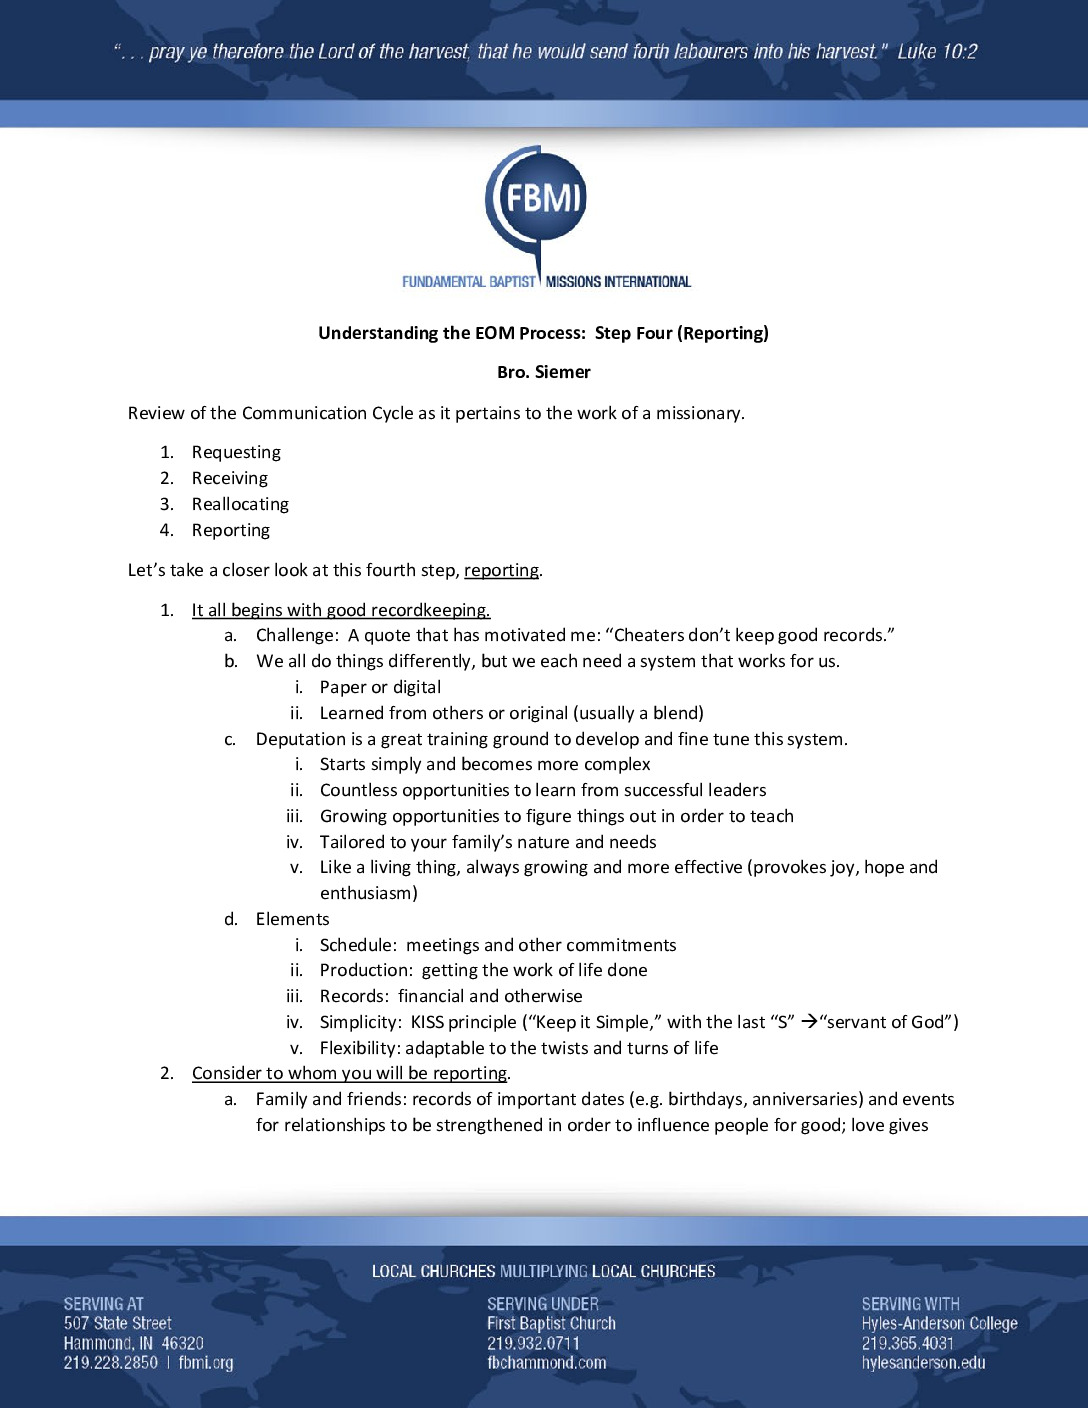 thumbnail of Understanding the EOM Process #4